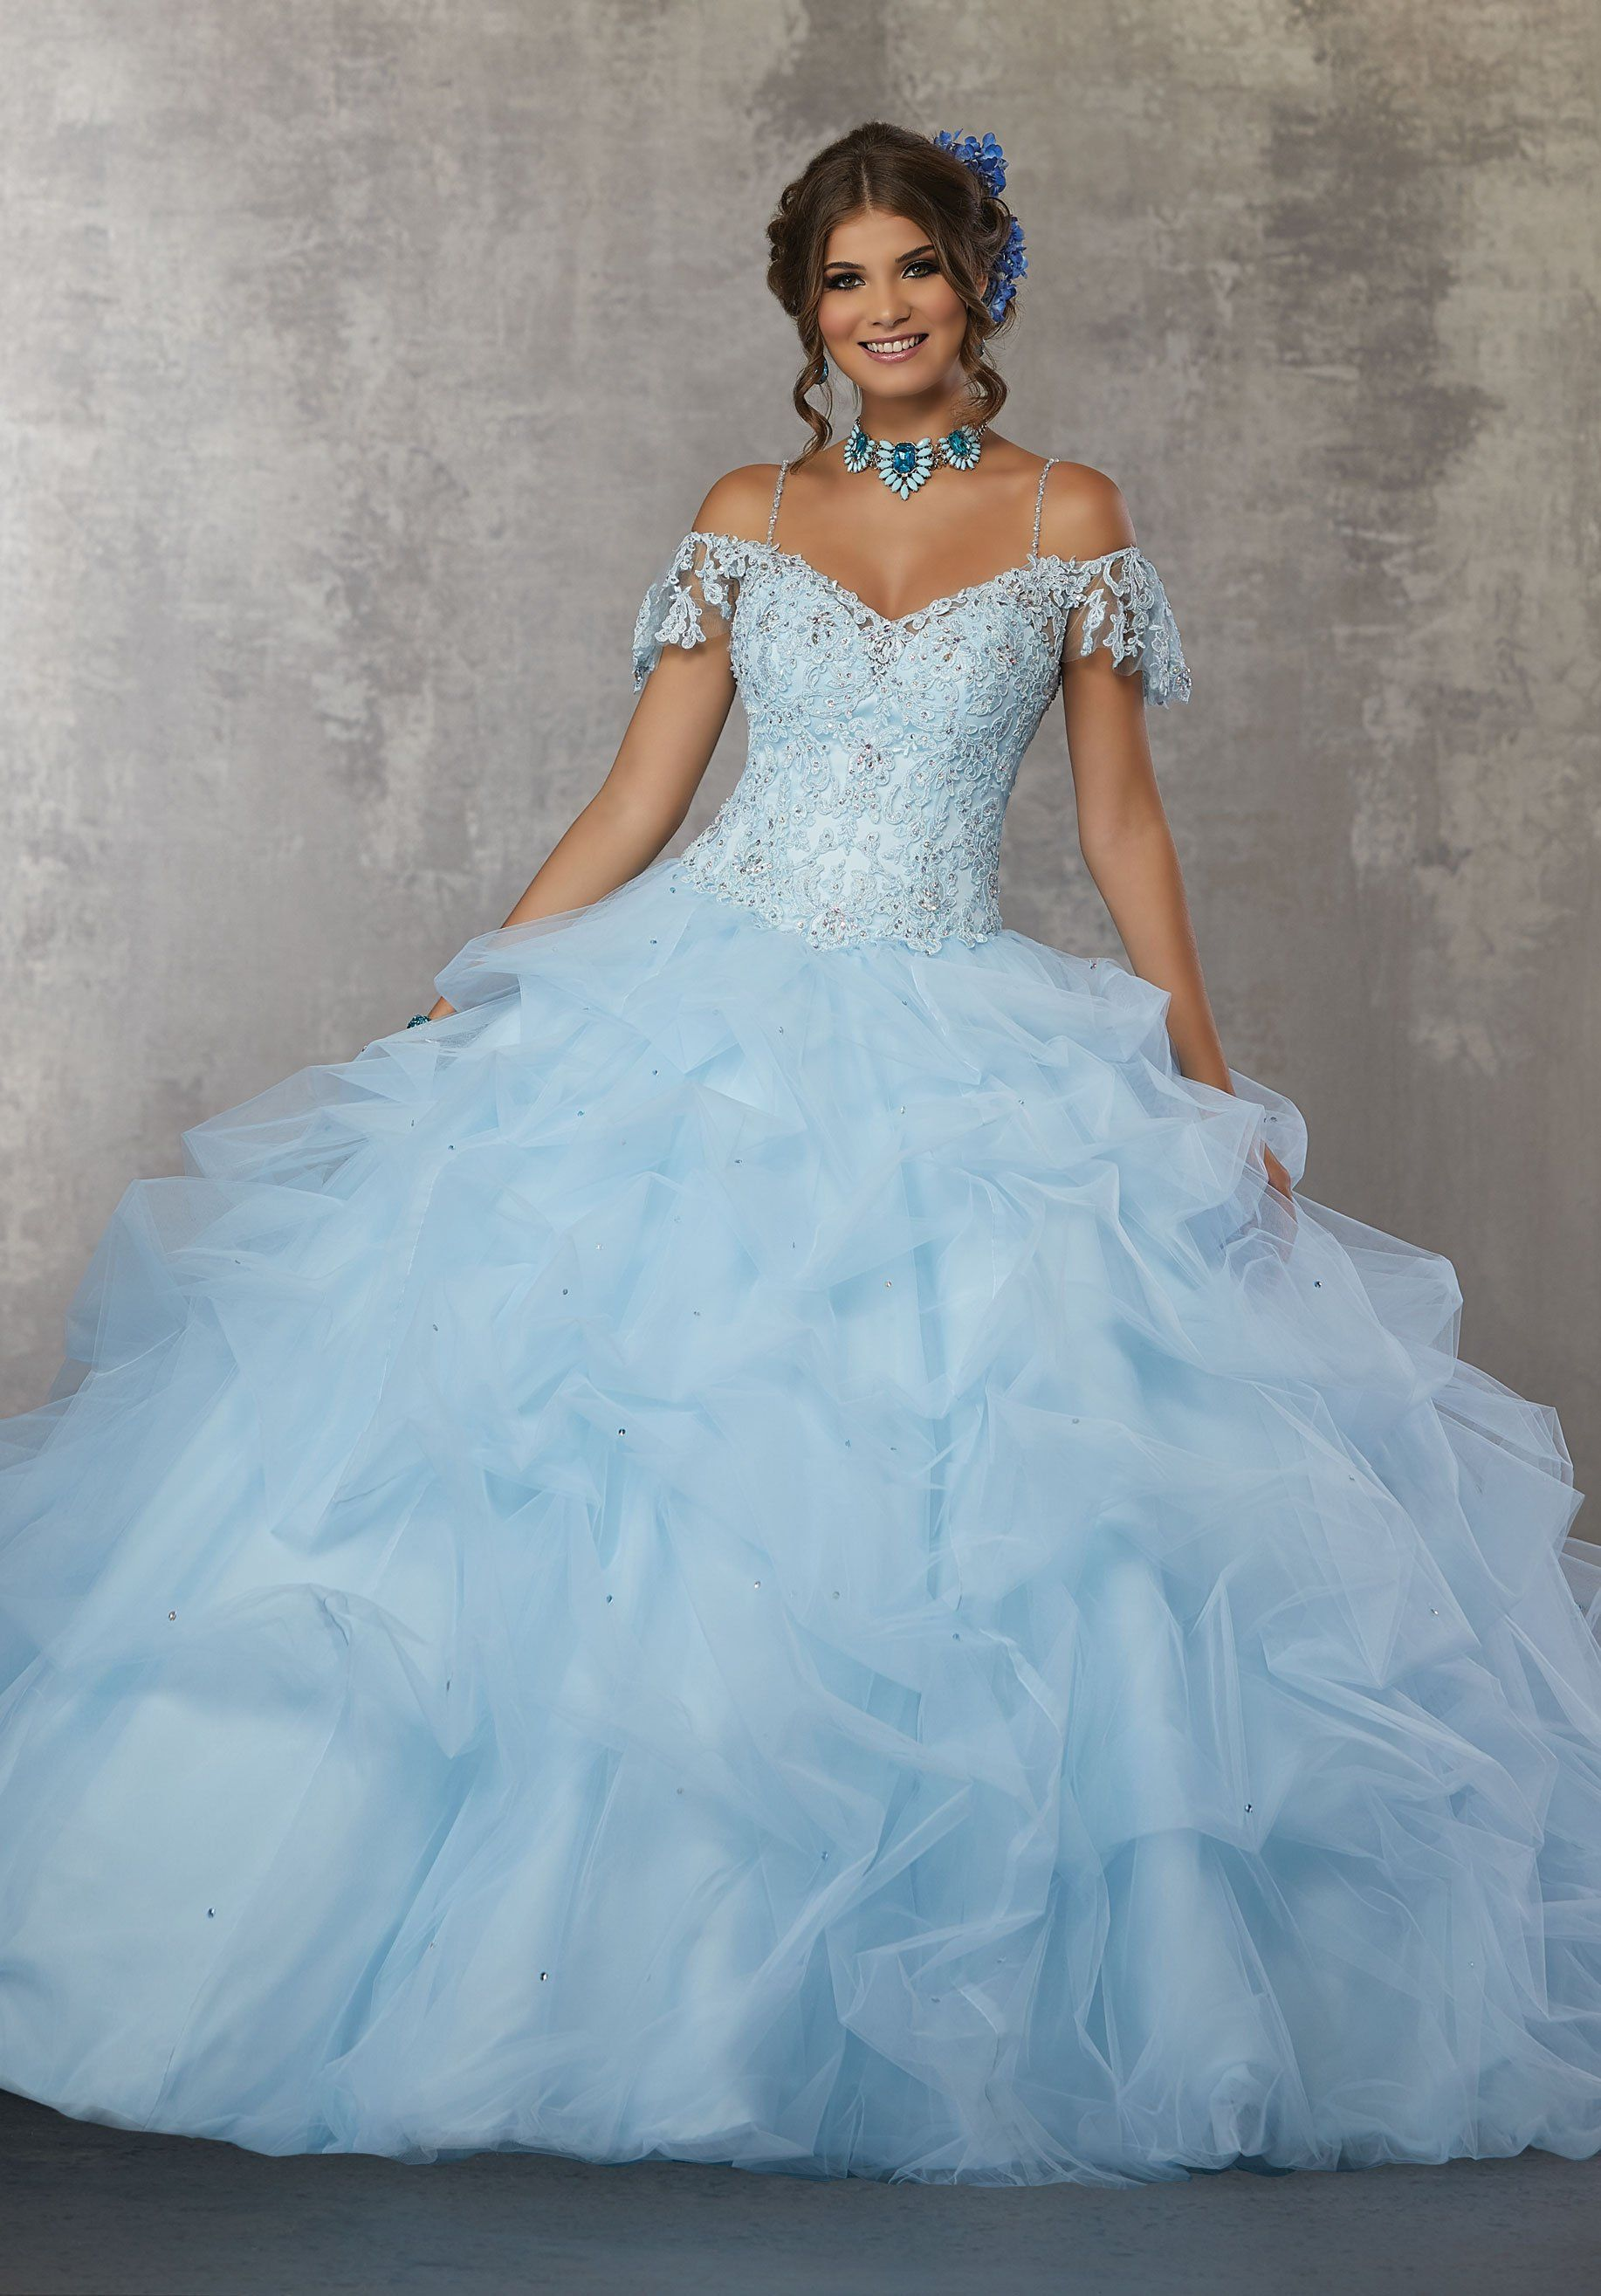 8a2ebe2c9fb Quinceanera Dress 60034 Valencia Collection - QuinceDresses.com.  fashion   style  outfit  womensfashion  clothes  womensstyle  fashionillustration ...